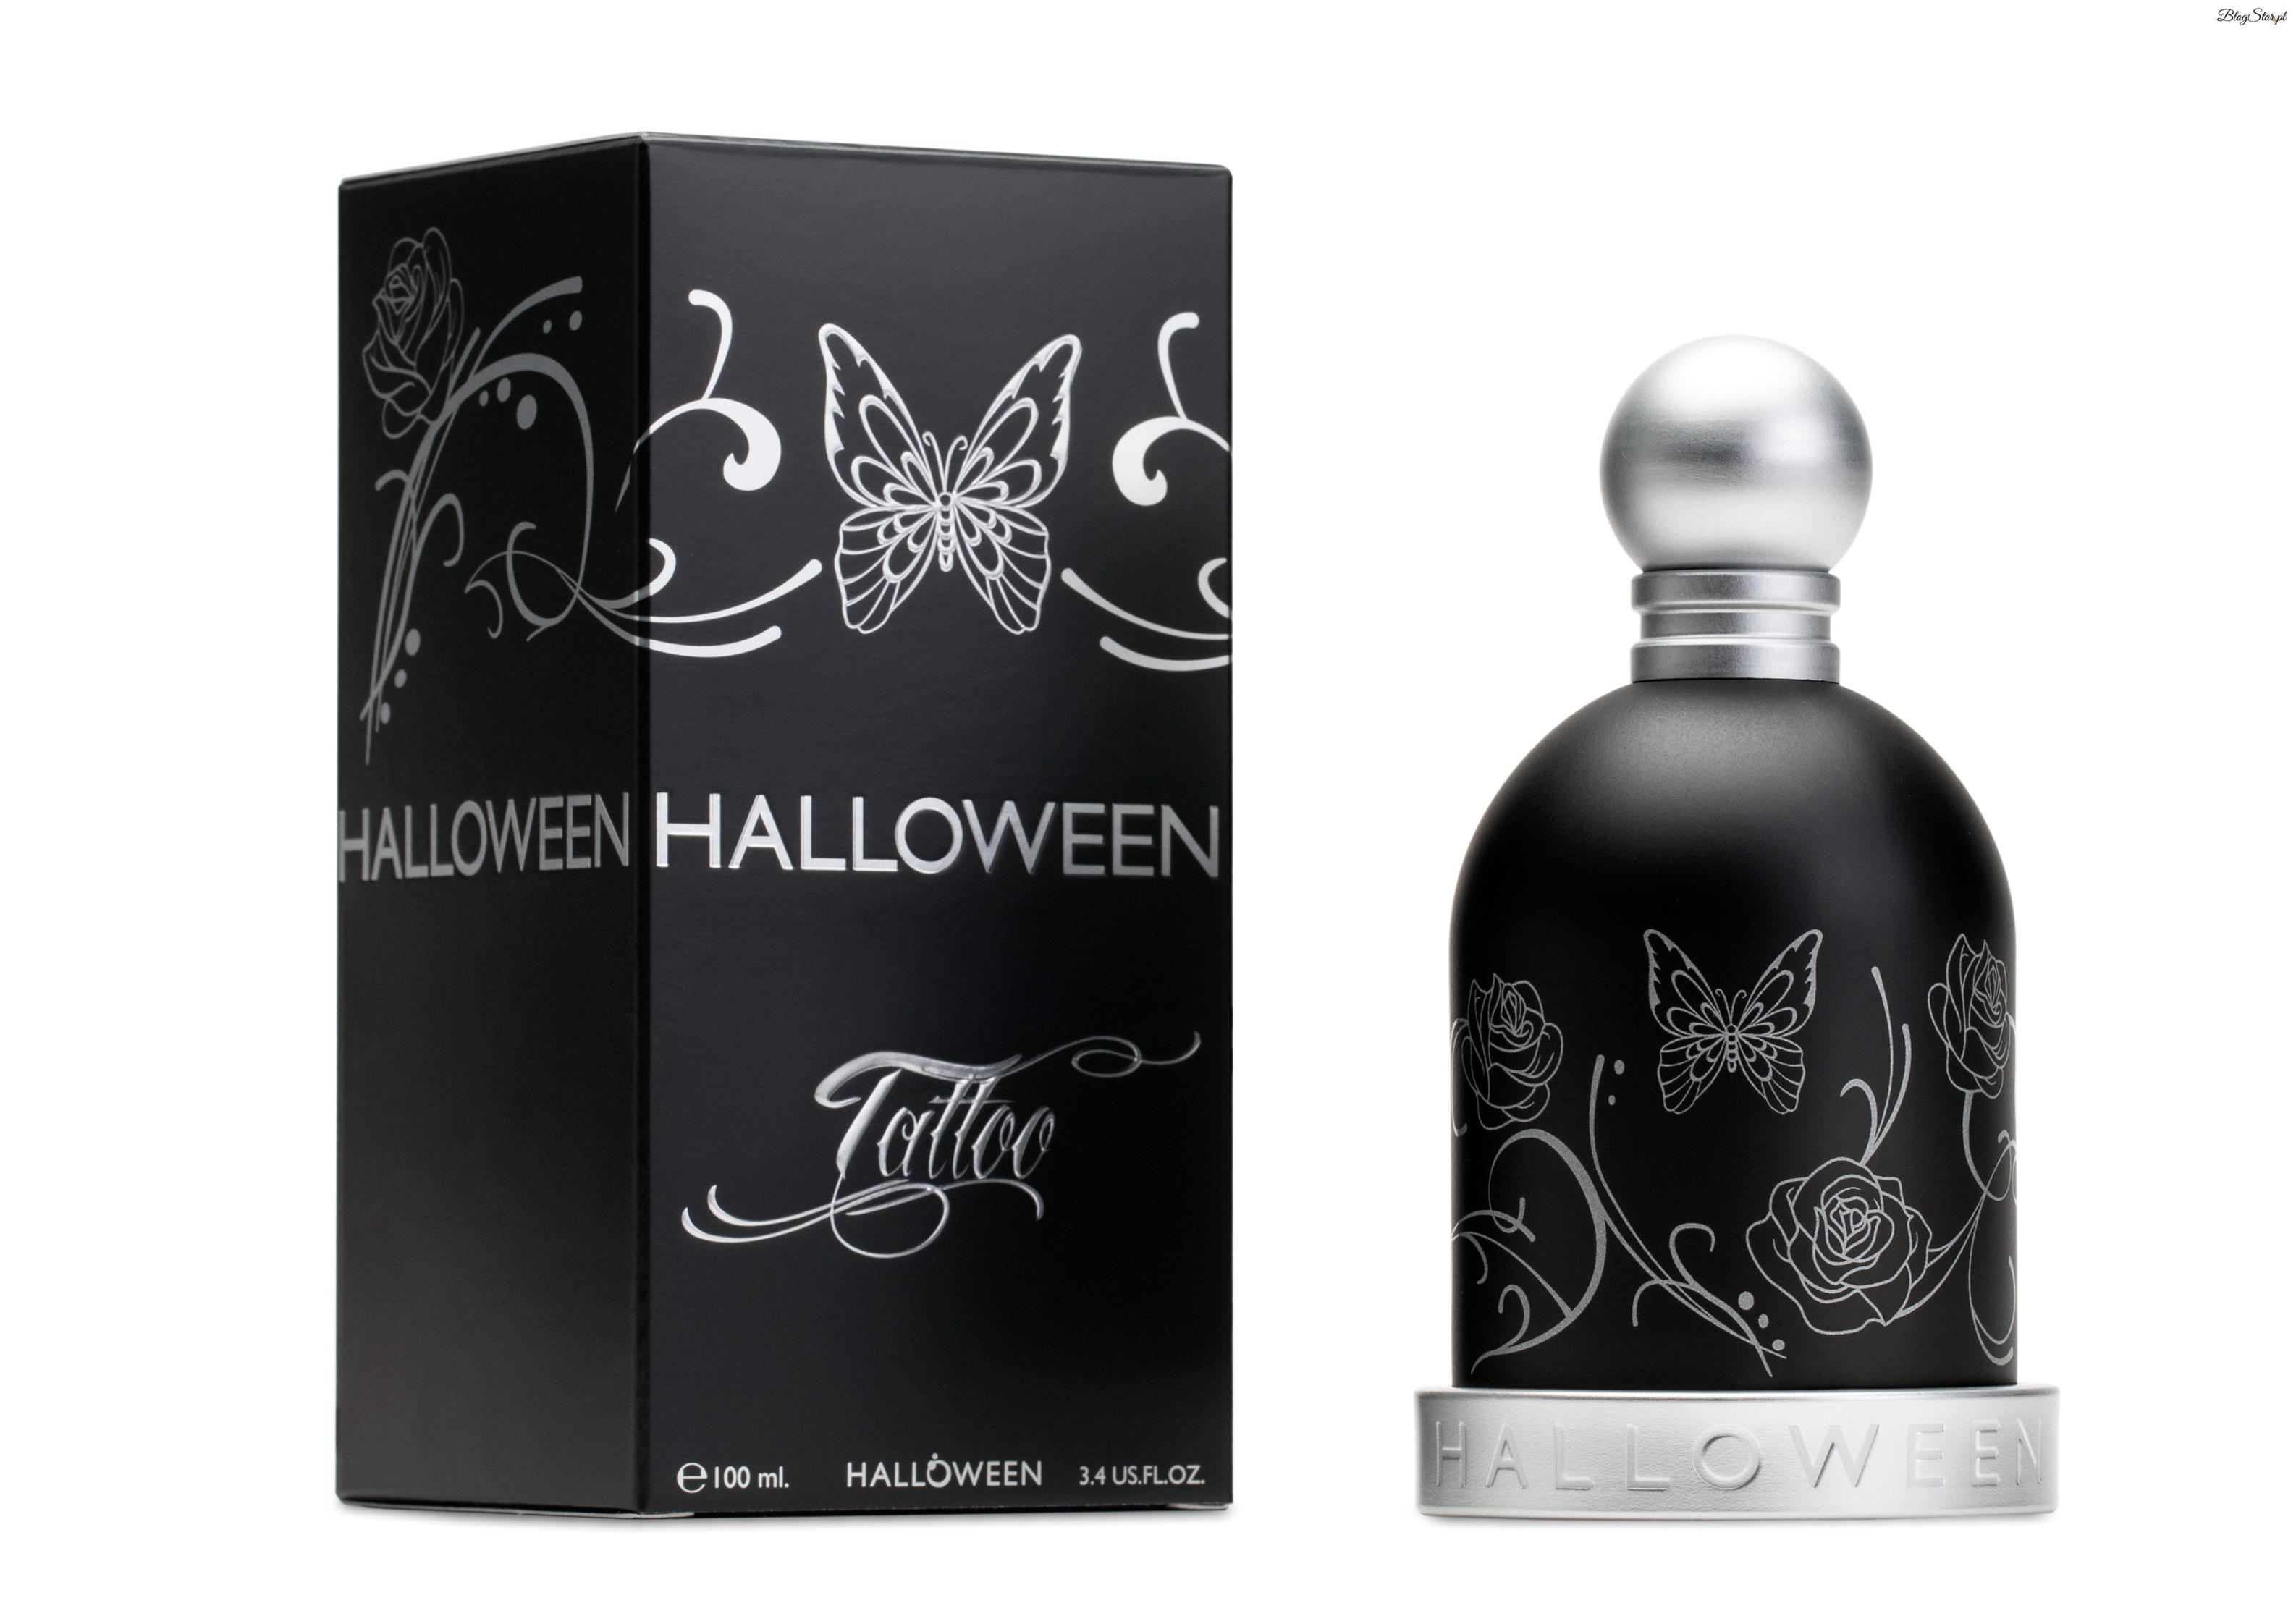 HALLOWEEN TATTOO (100ml)